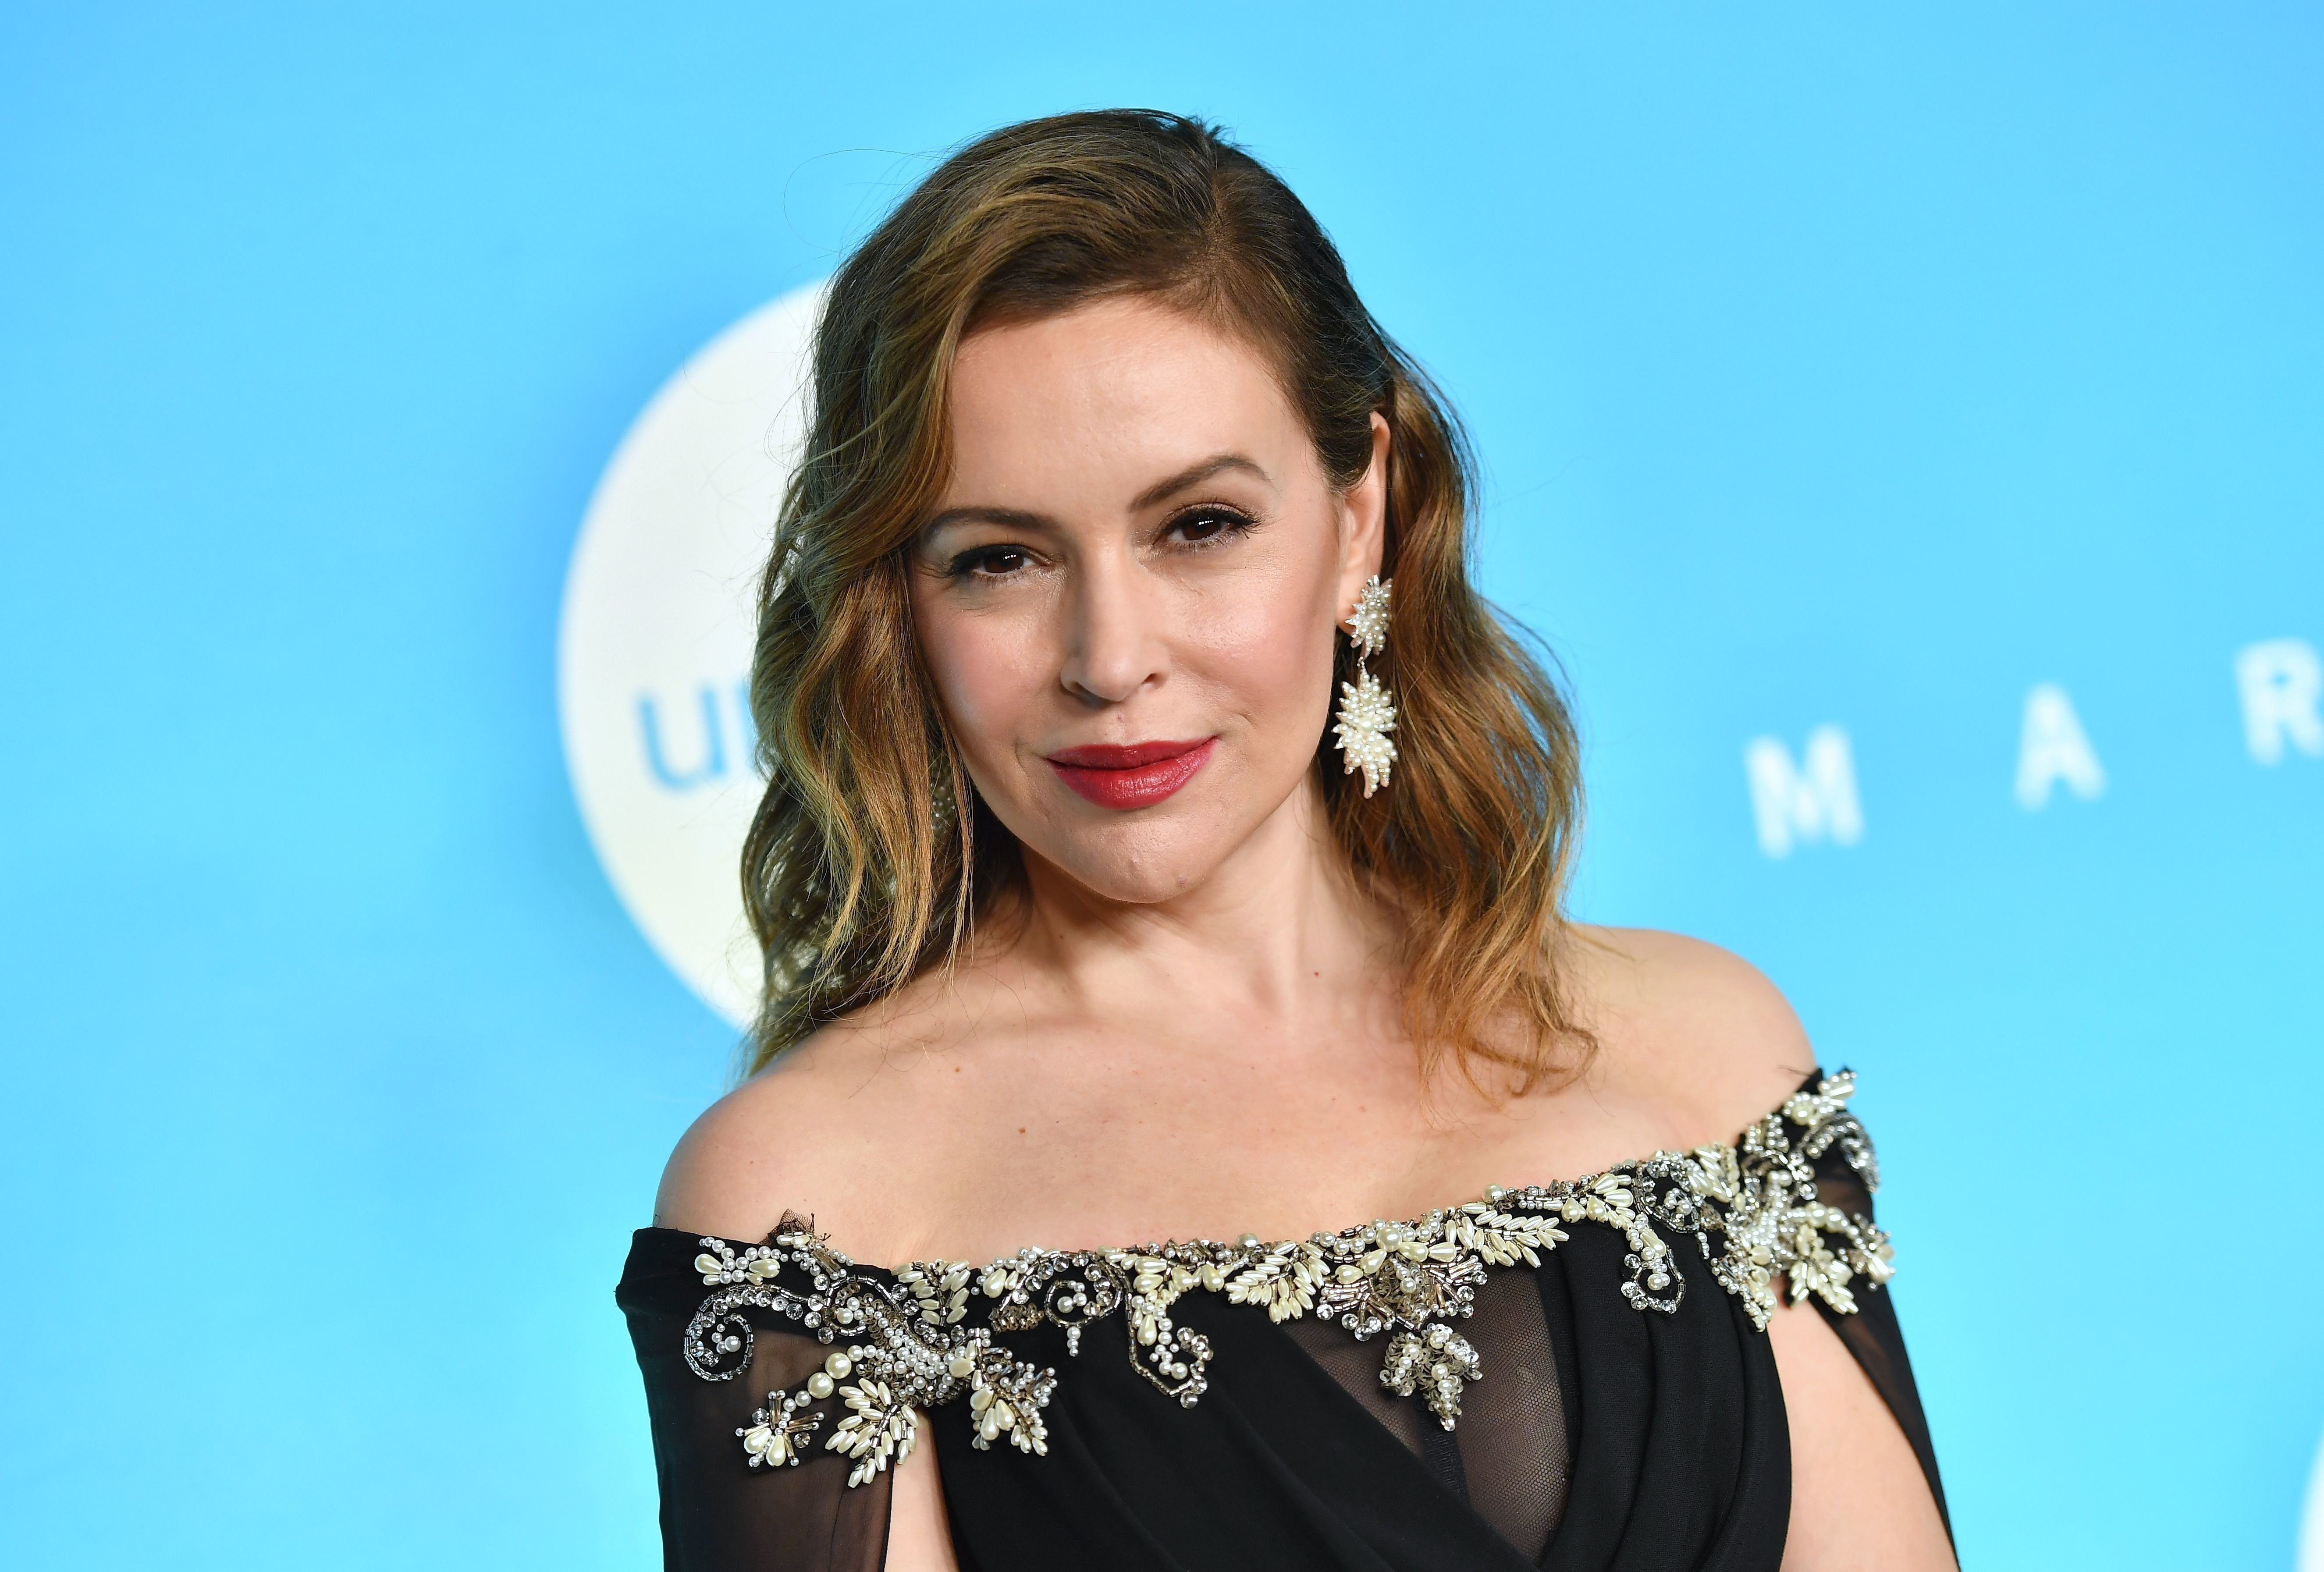 Actress Alyssa Milano attends the 14th Annual UNICEF Snowflake Ball on November 27, 2018 in New York City.